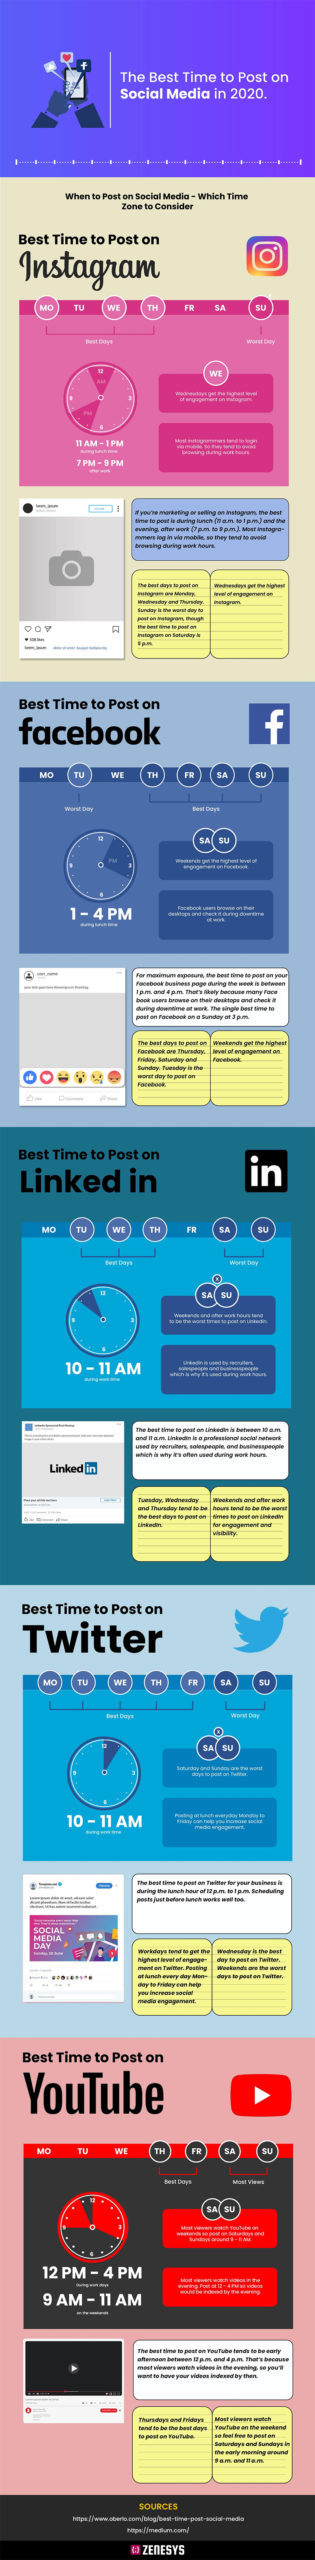 Social Media 2020 The Best Times to Post on Facebook Instagram Twitter LinkedIn scaled e1600175229892